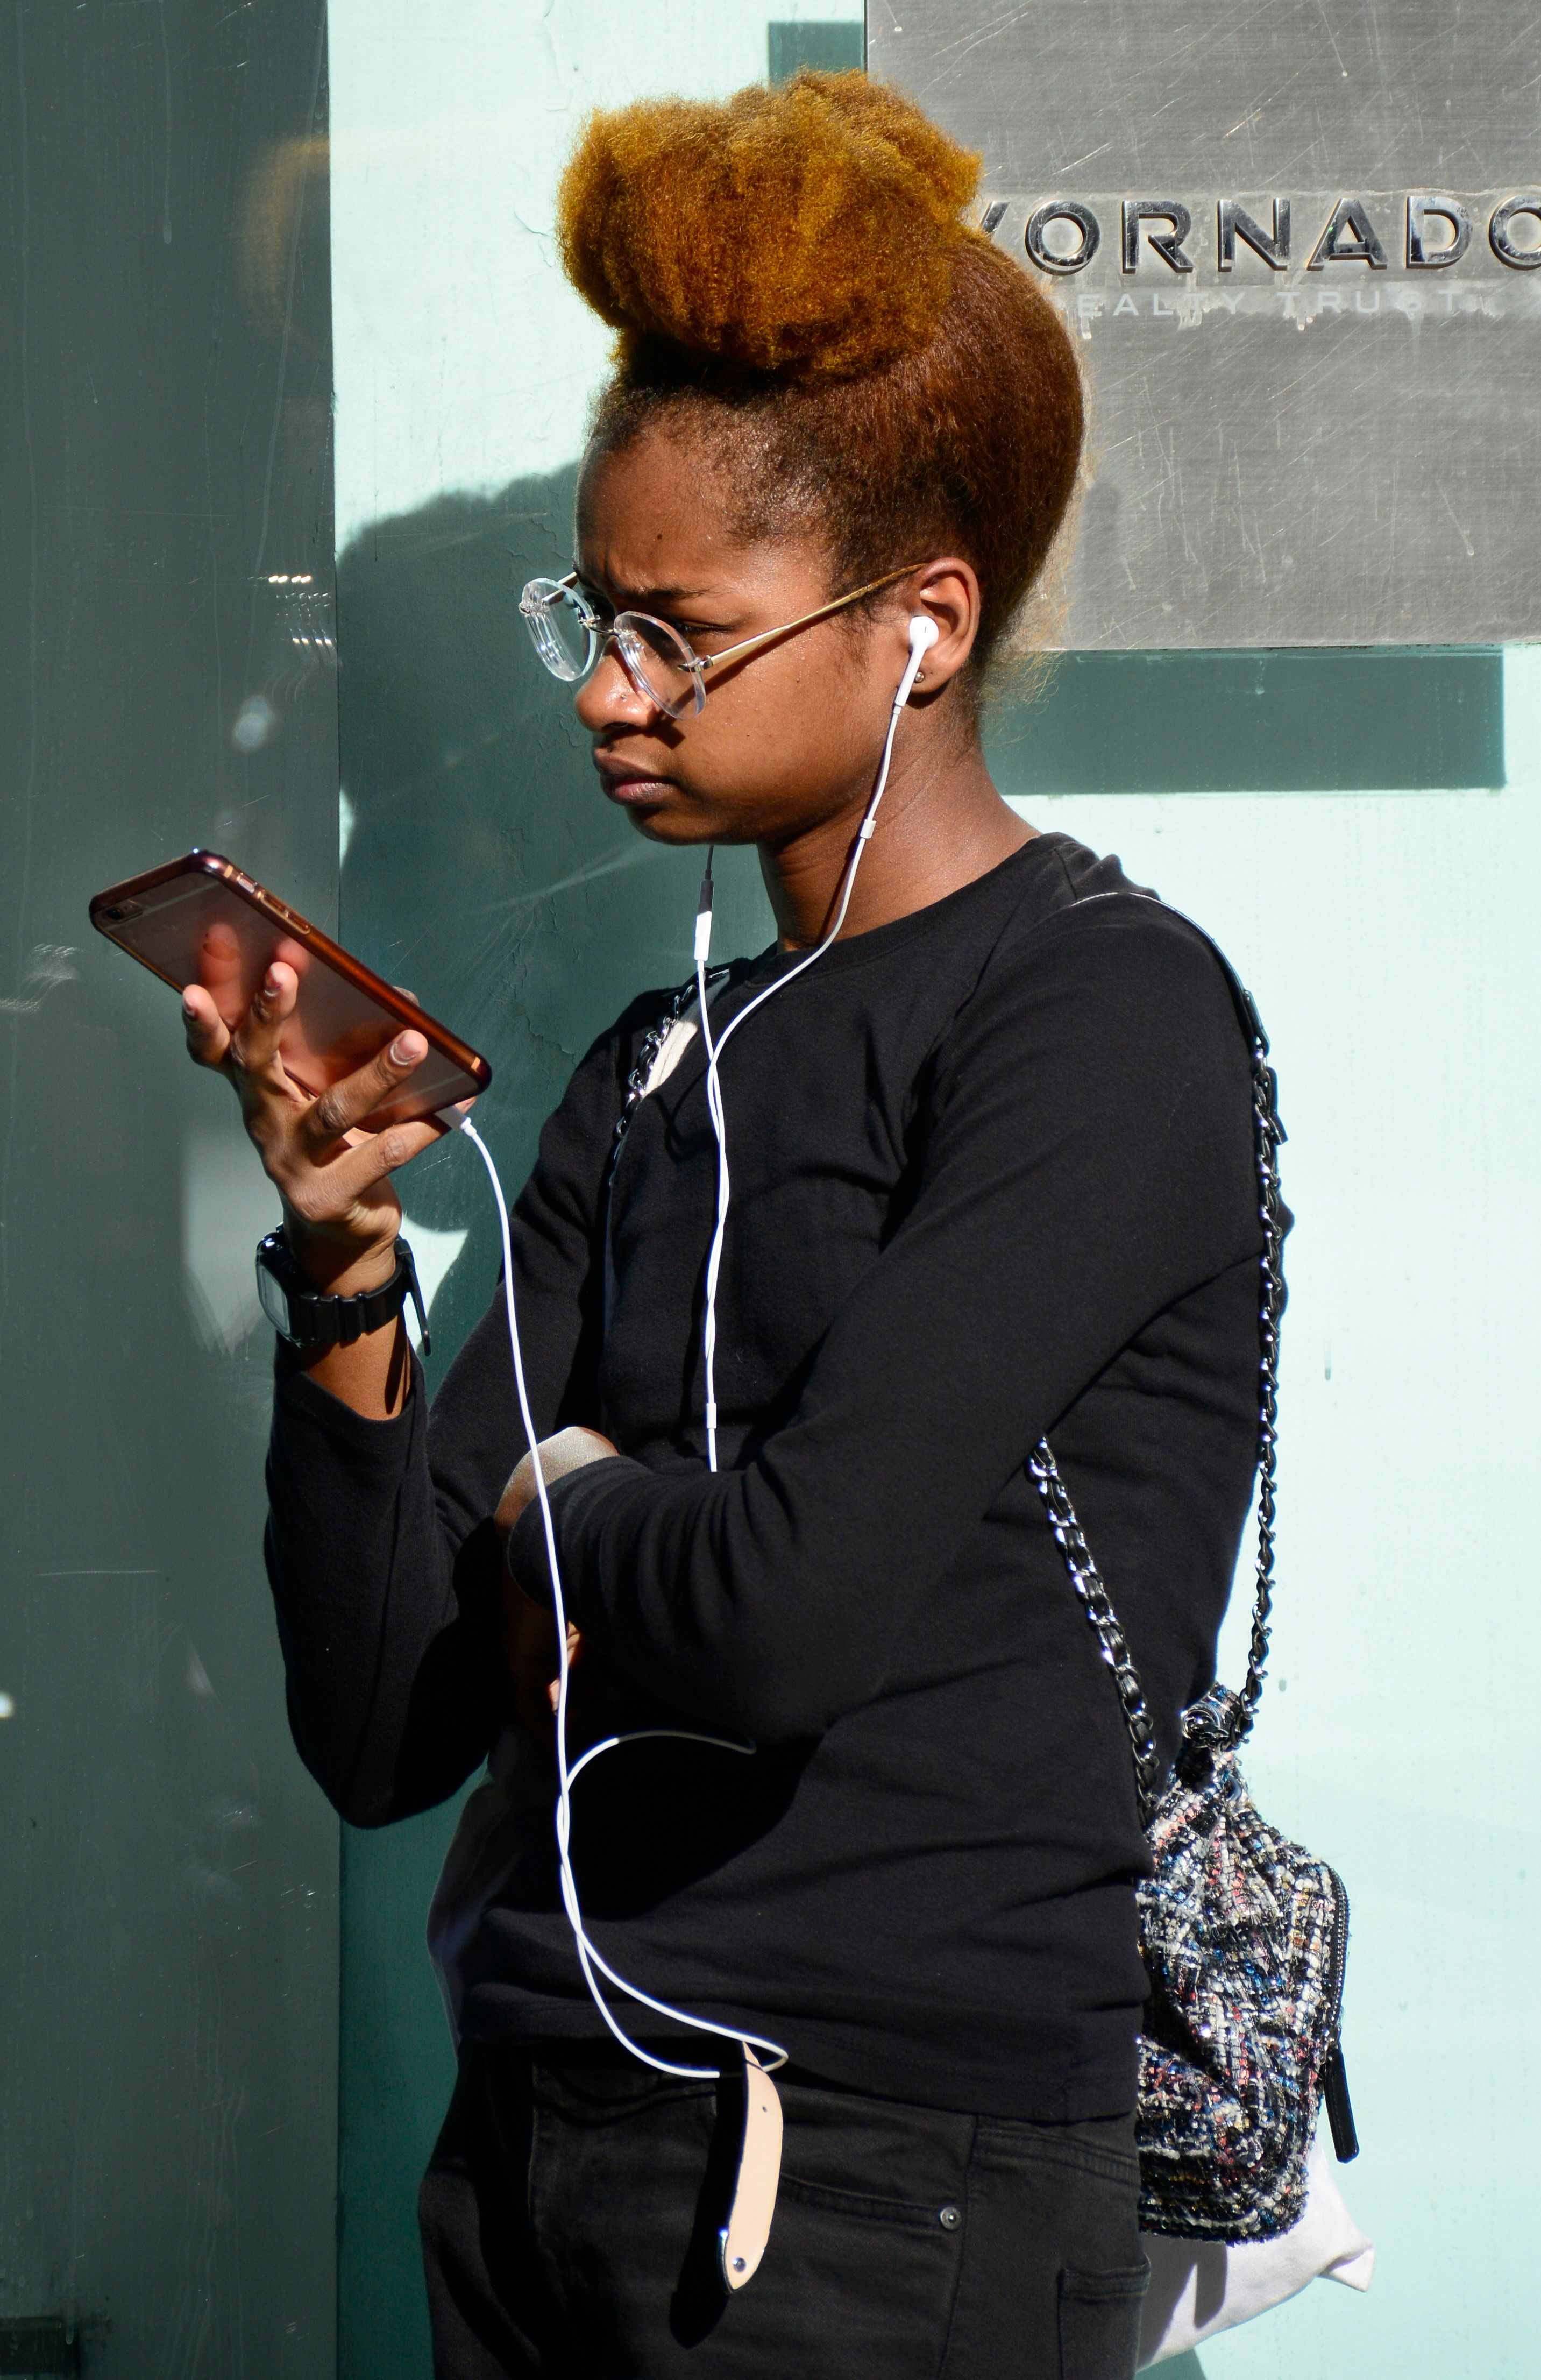 NEW YORK, NY - SEPTEMBER 22, 2017:  A young woman pauses on a New York City sidewalk to use her smartphone. (Photo by Robert Alexander/Getty Images)